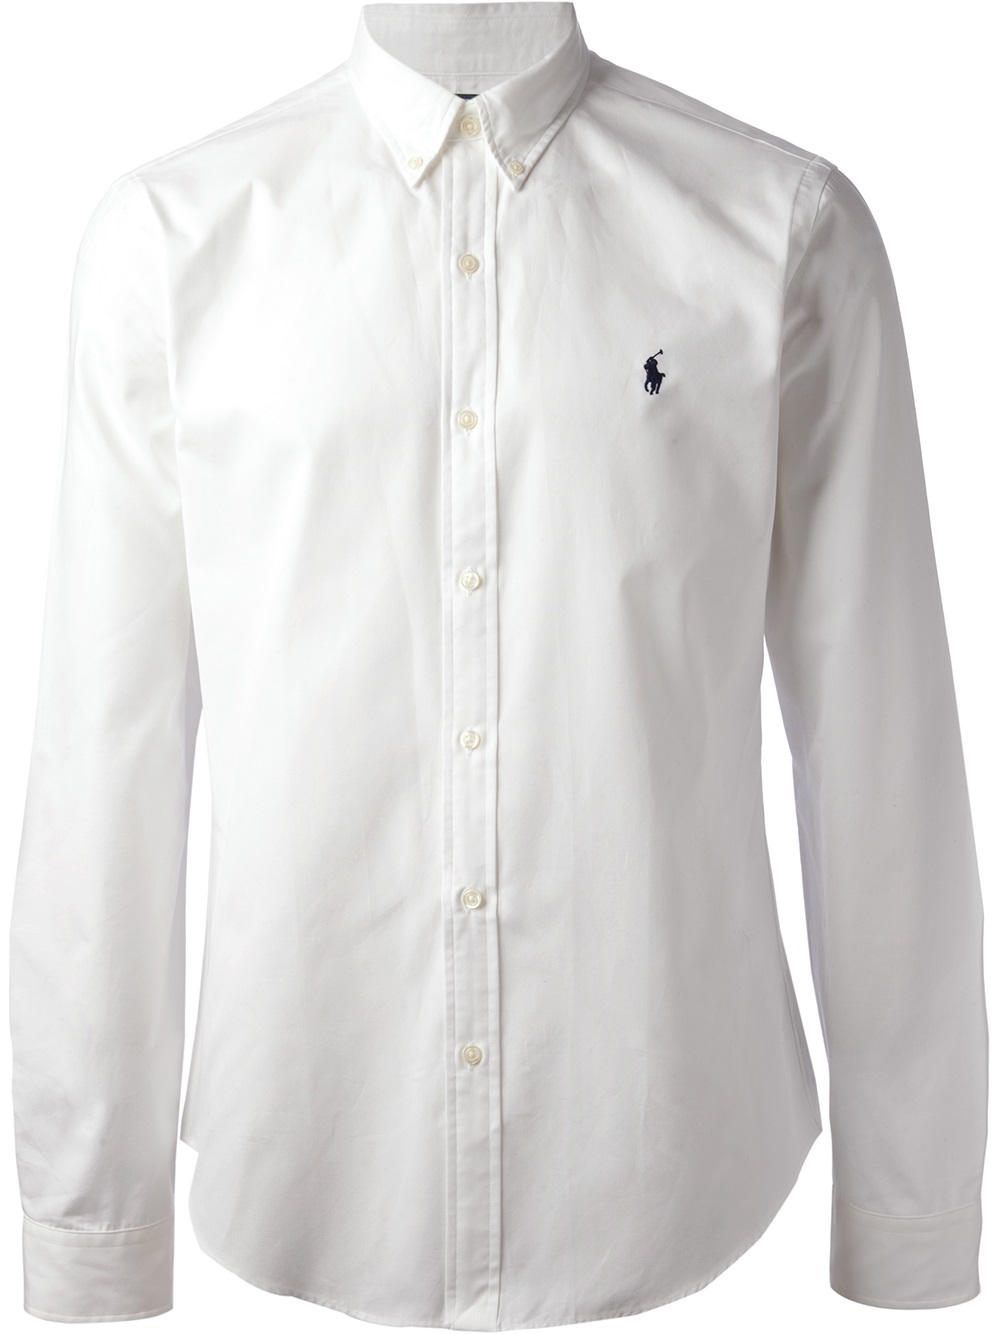 Lyst - Polo Ralph Lauren Long Sleeve Shirt in White for Men 3d027c2b616